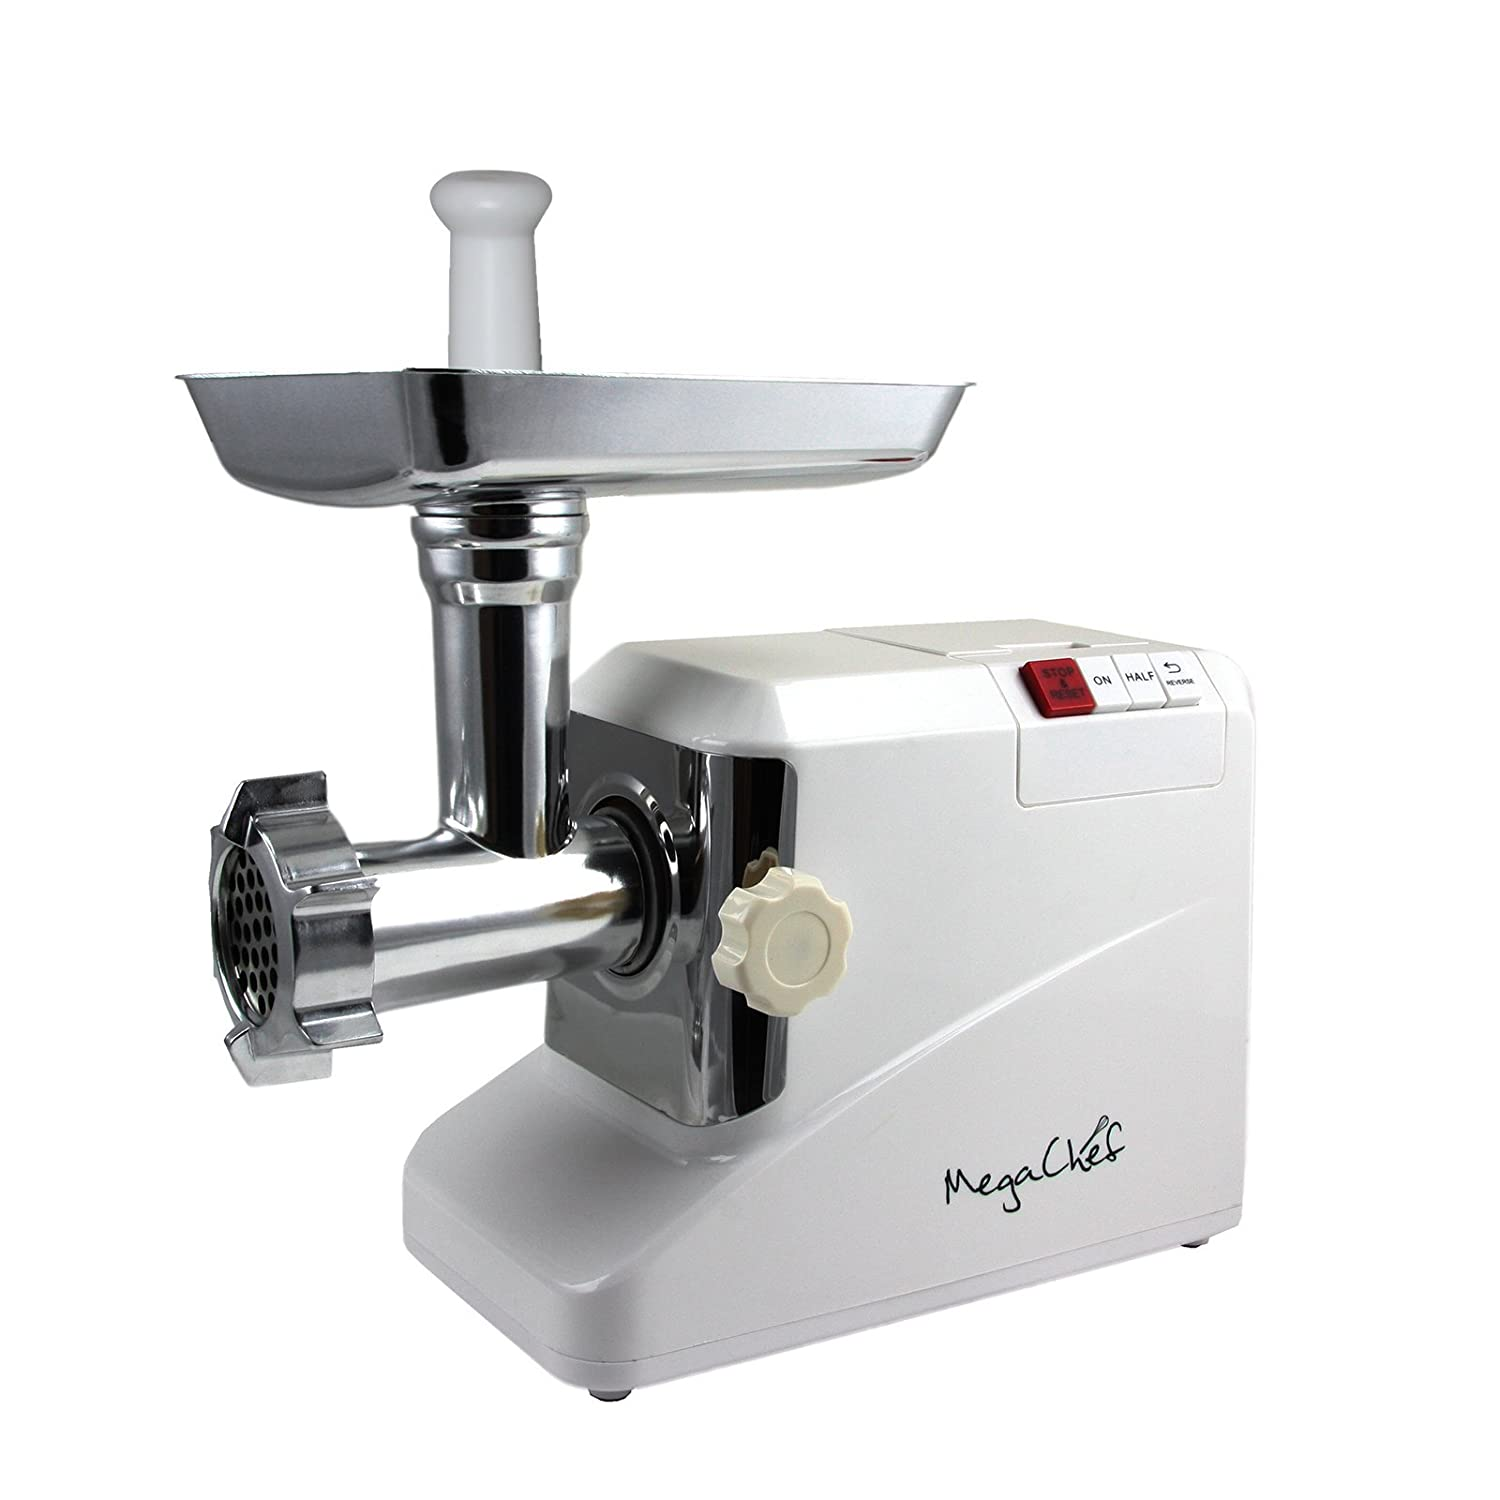 Megachef 1800W Automatic Meat Grinder for Household Use Mega Chef MG-750